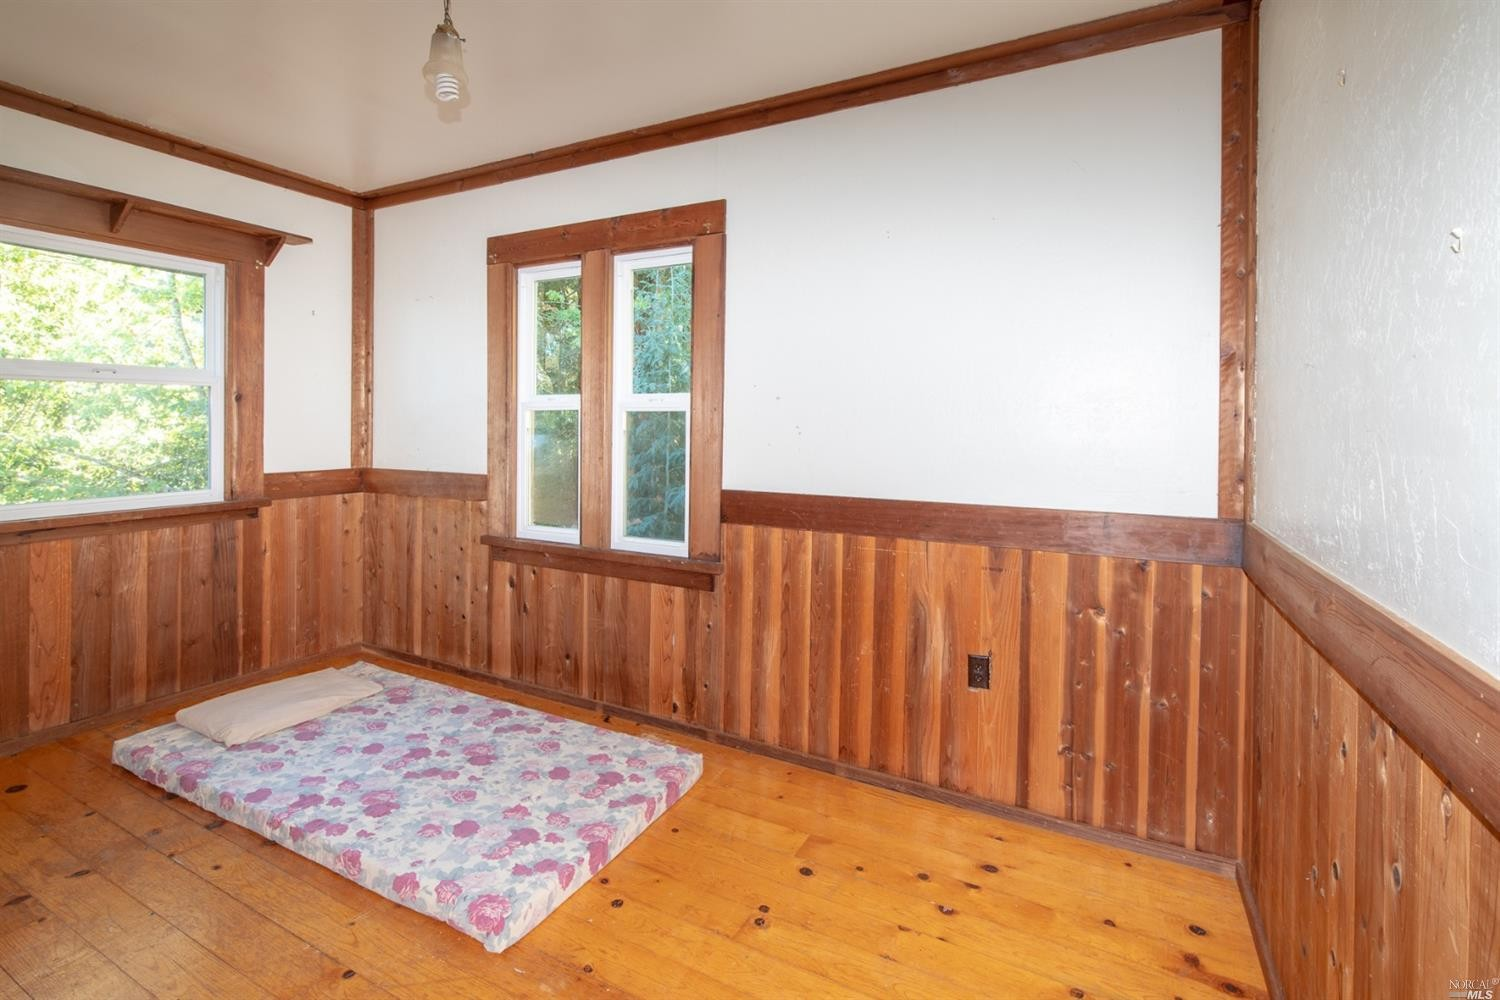 a bedroom in the family home for sale, Philo, CA